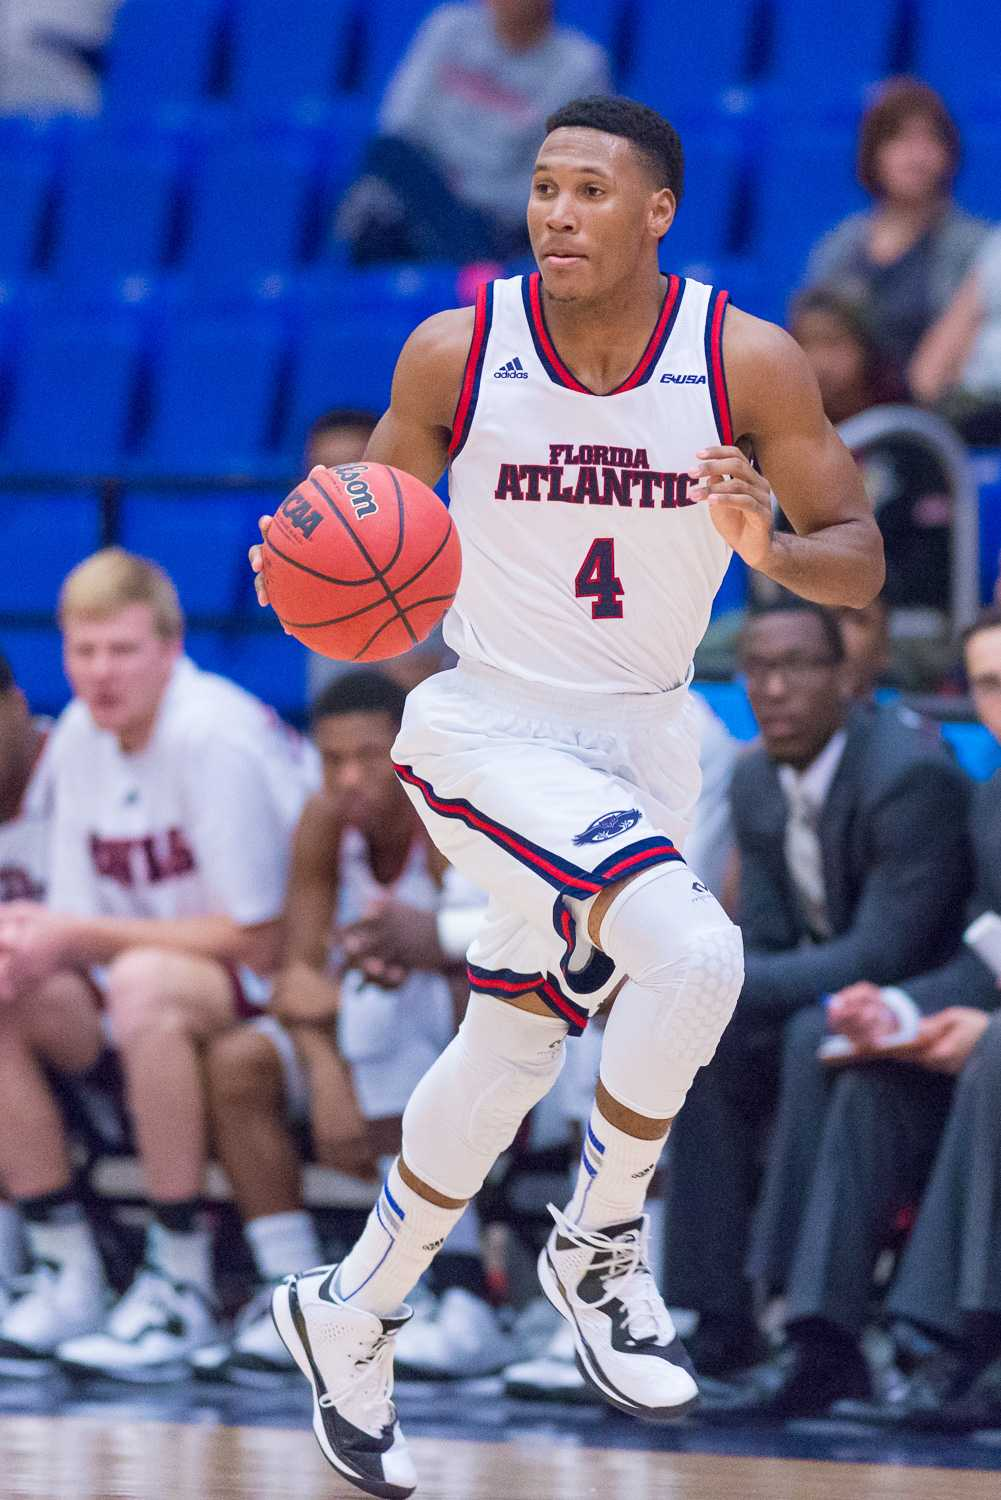 Freshman guard Justin Massey scored 17 points in the loss to Harvard on Nov. 17. Photo by Max Jackson